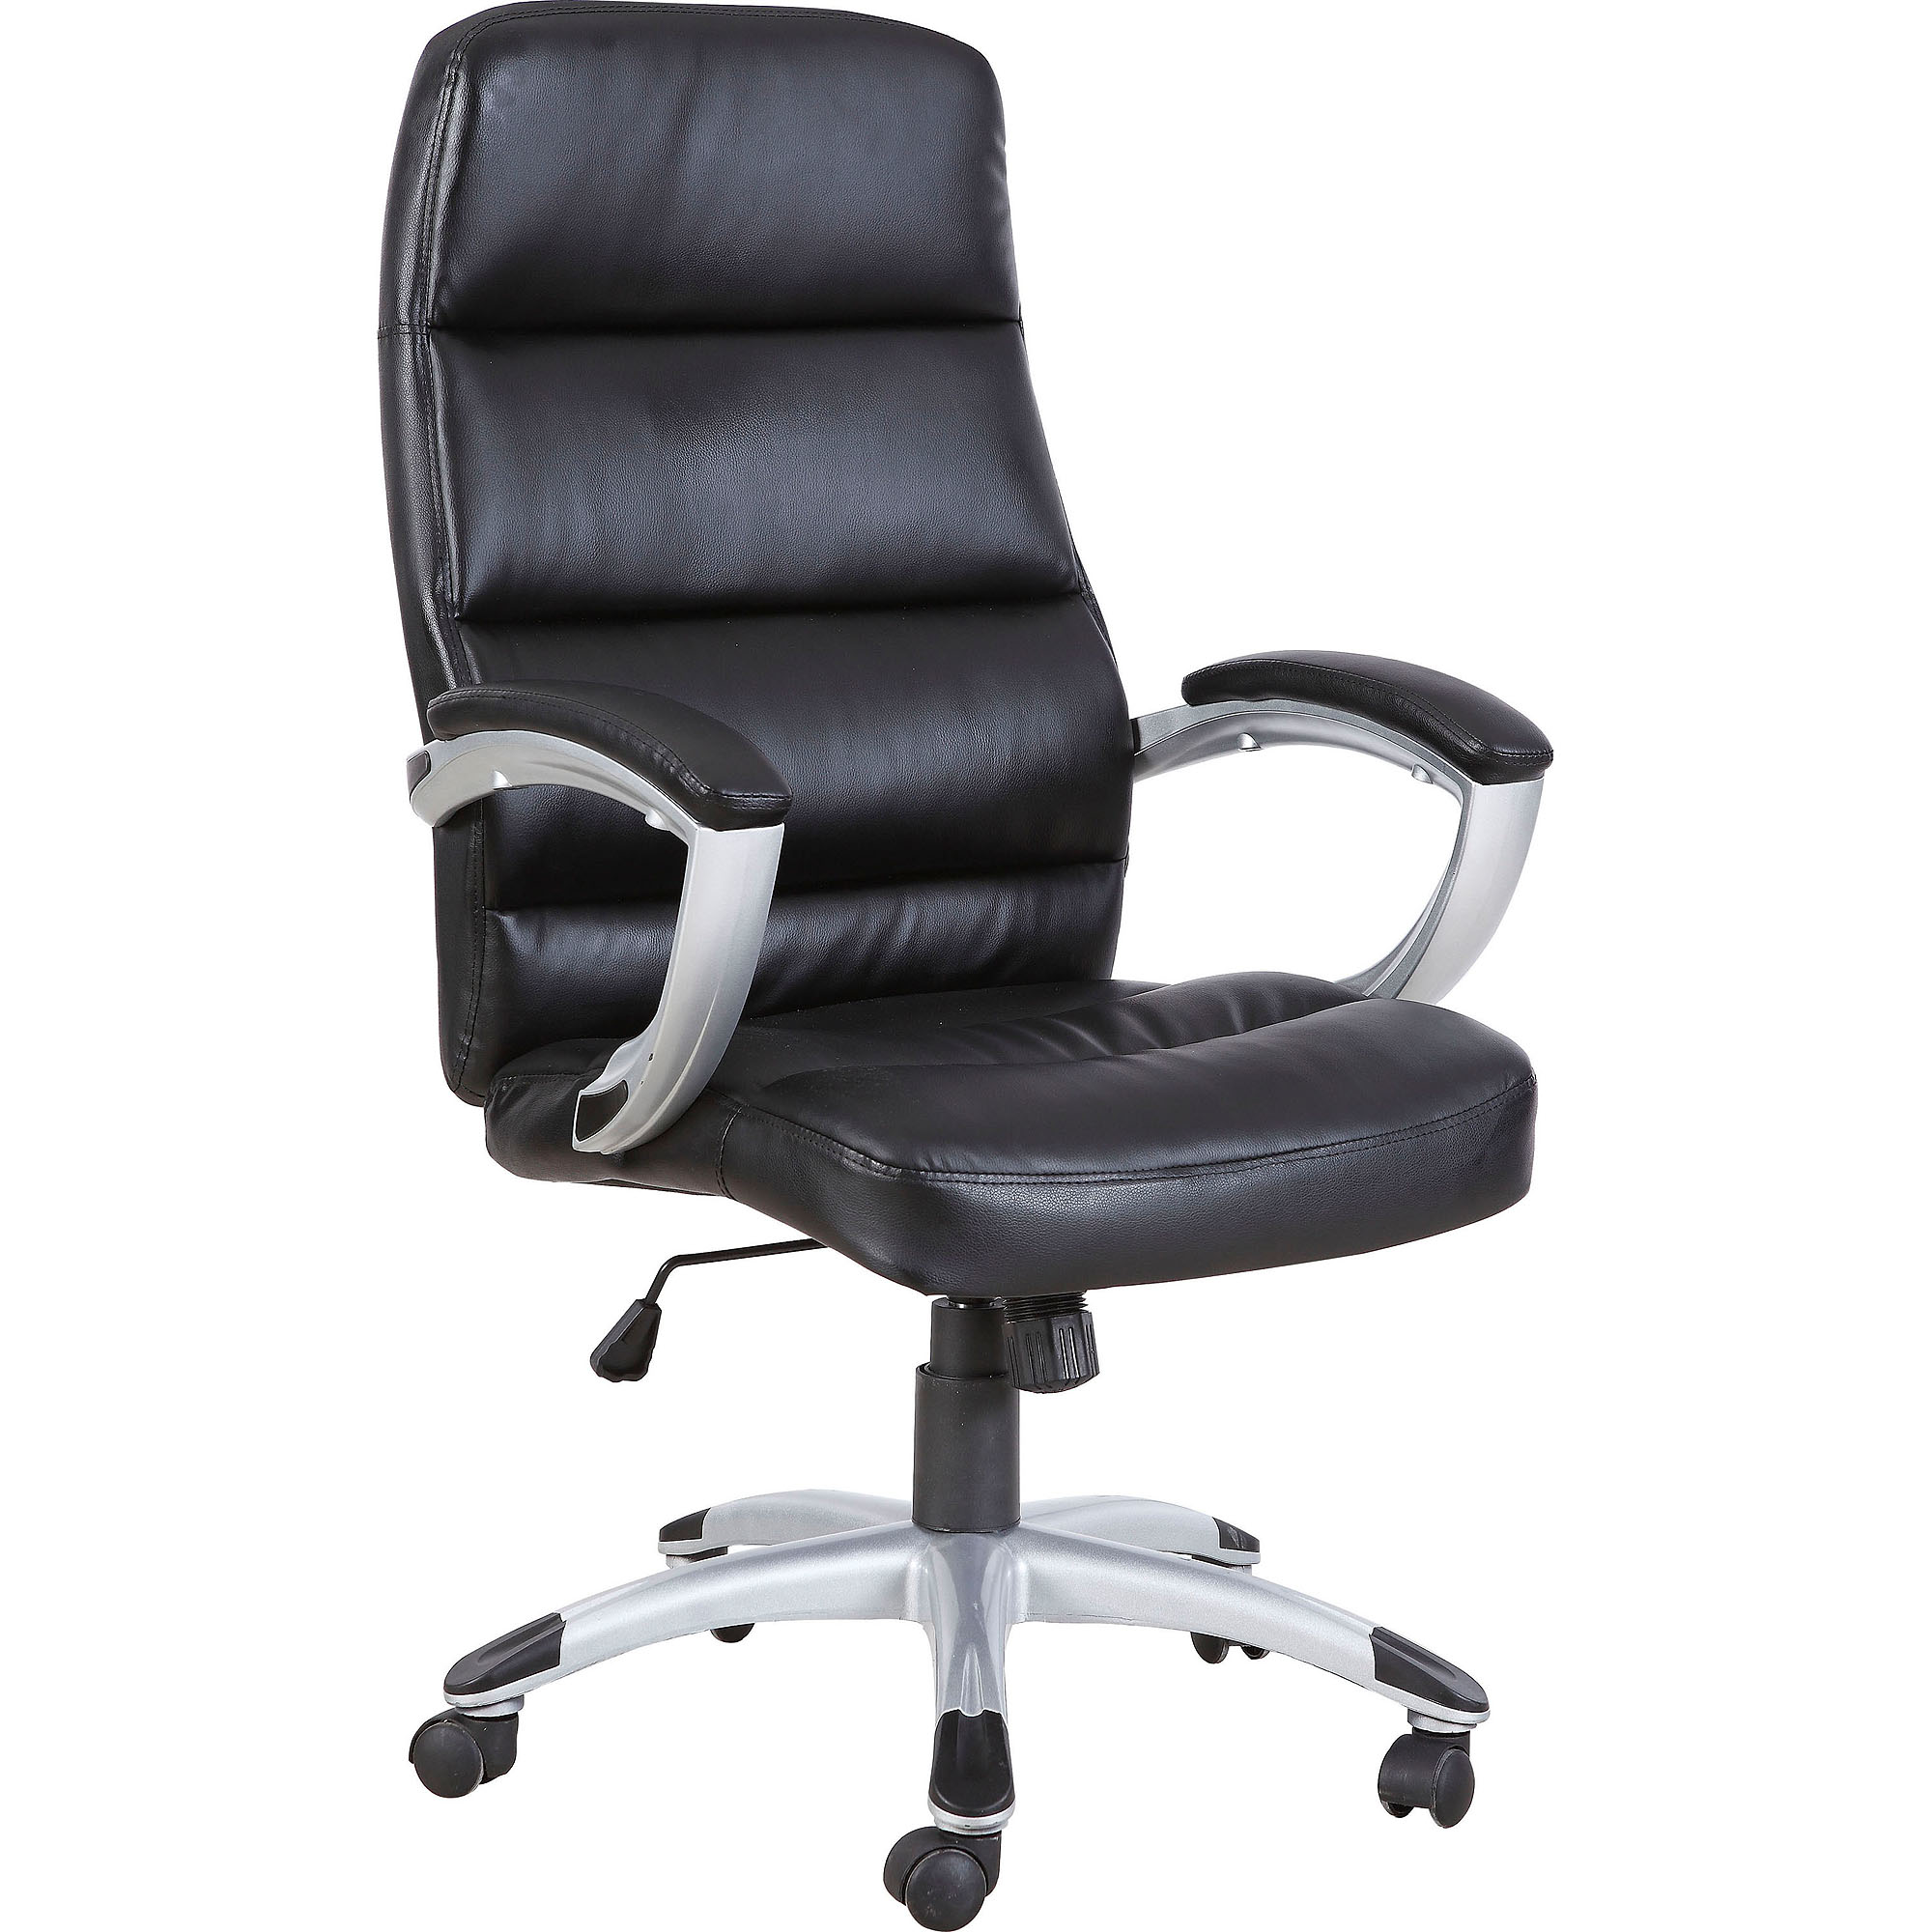 Techni Mobili High Back Executive Office Chair, Black